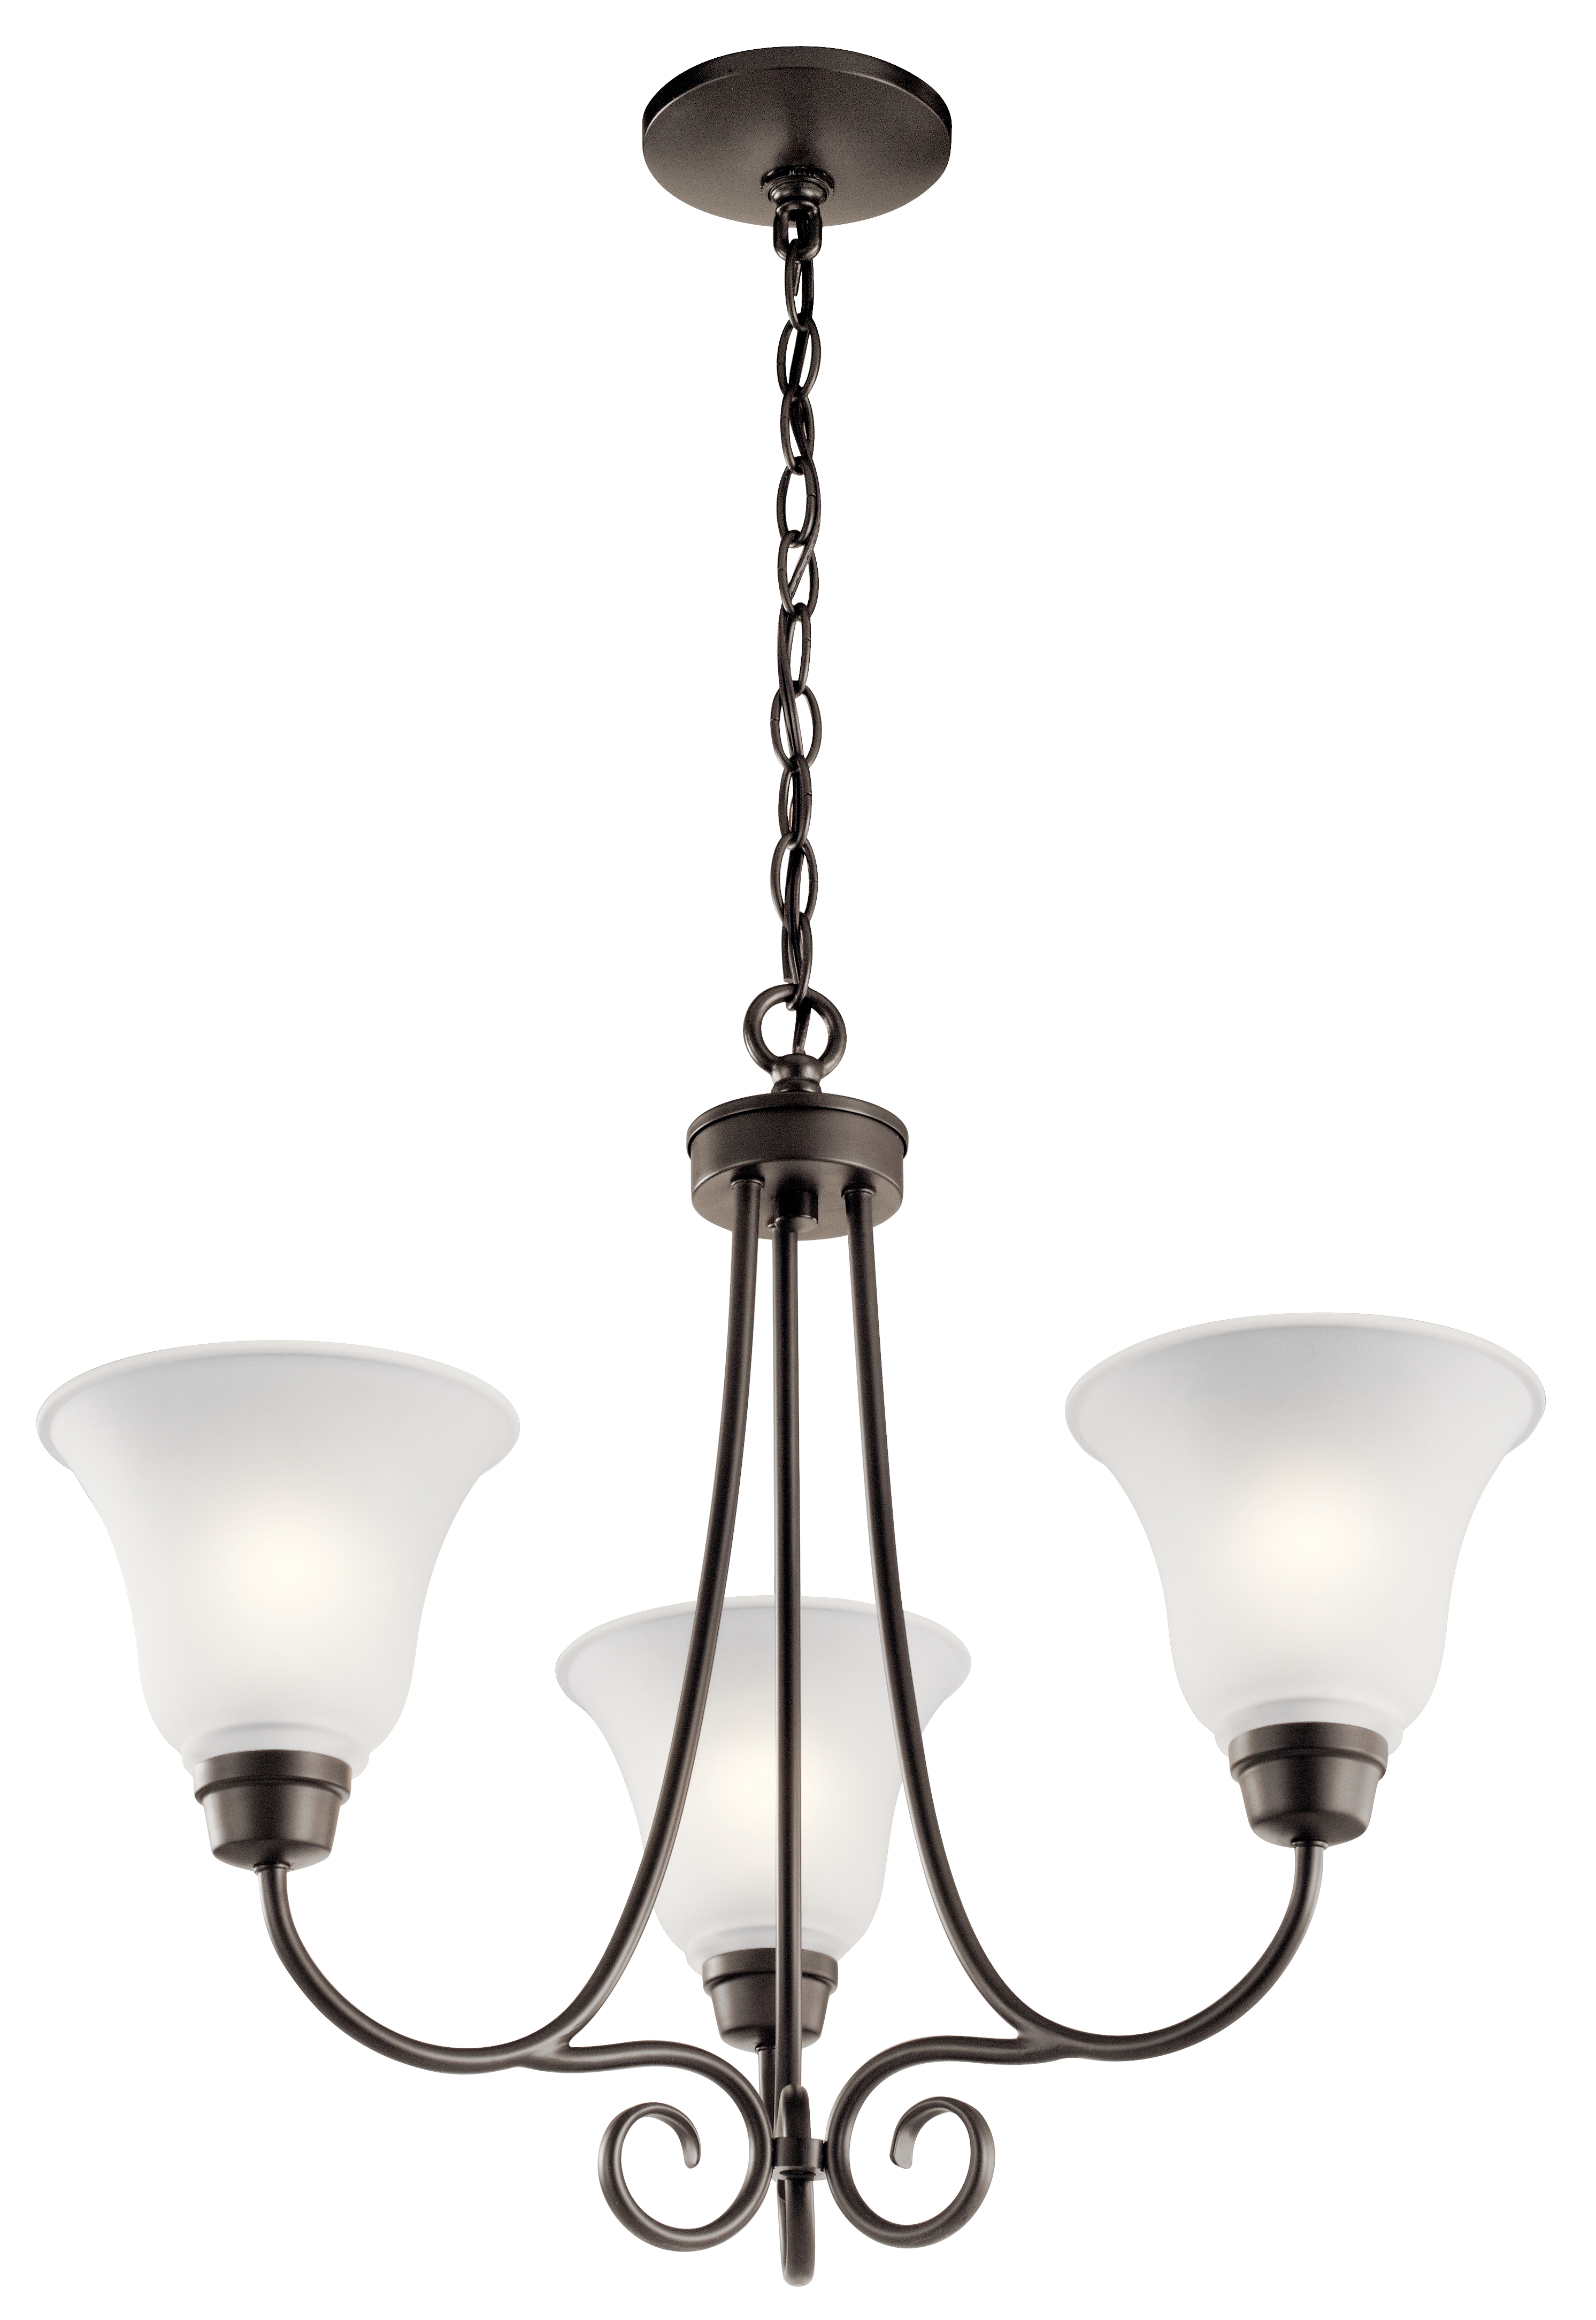 Kichler Bixler Chandelier with Satin Etched Shade - Olde Bronze (43937OZ)